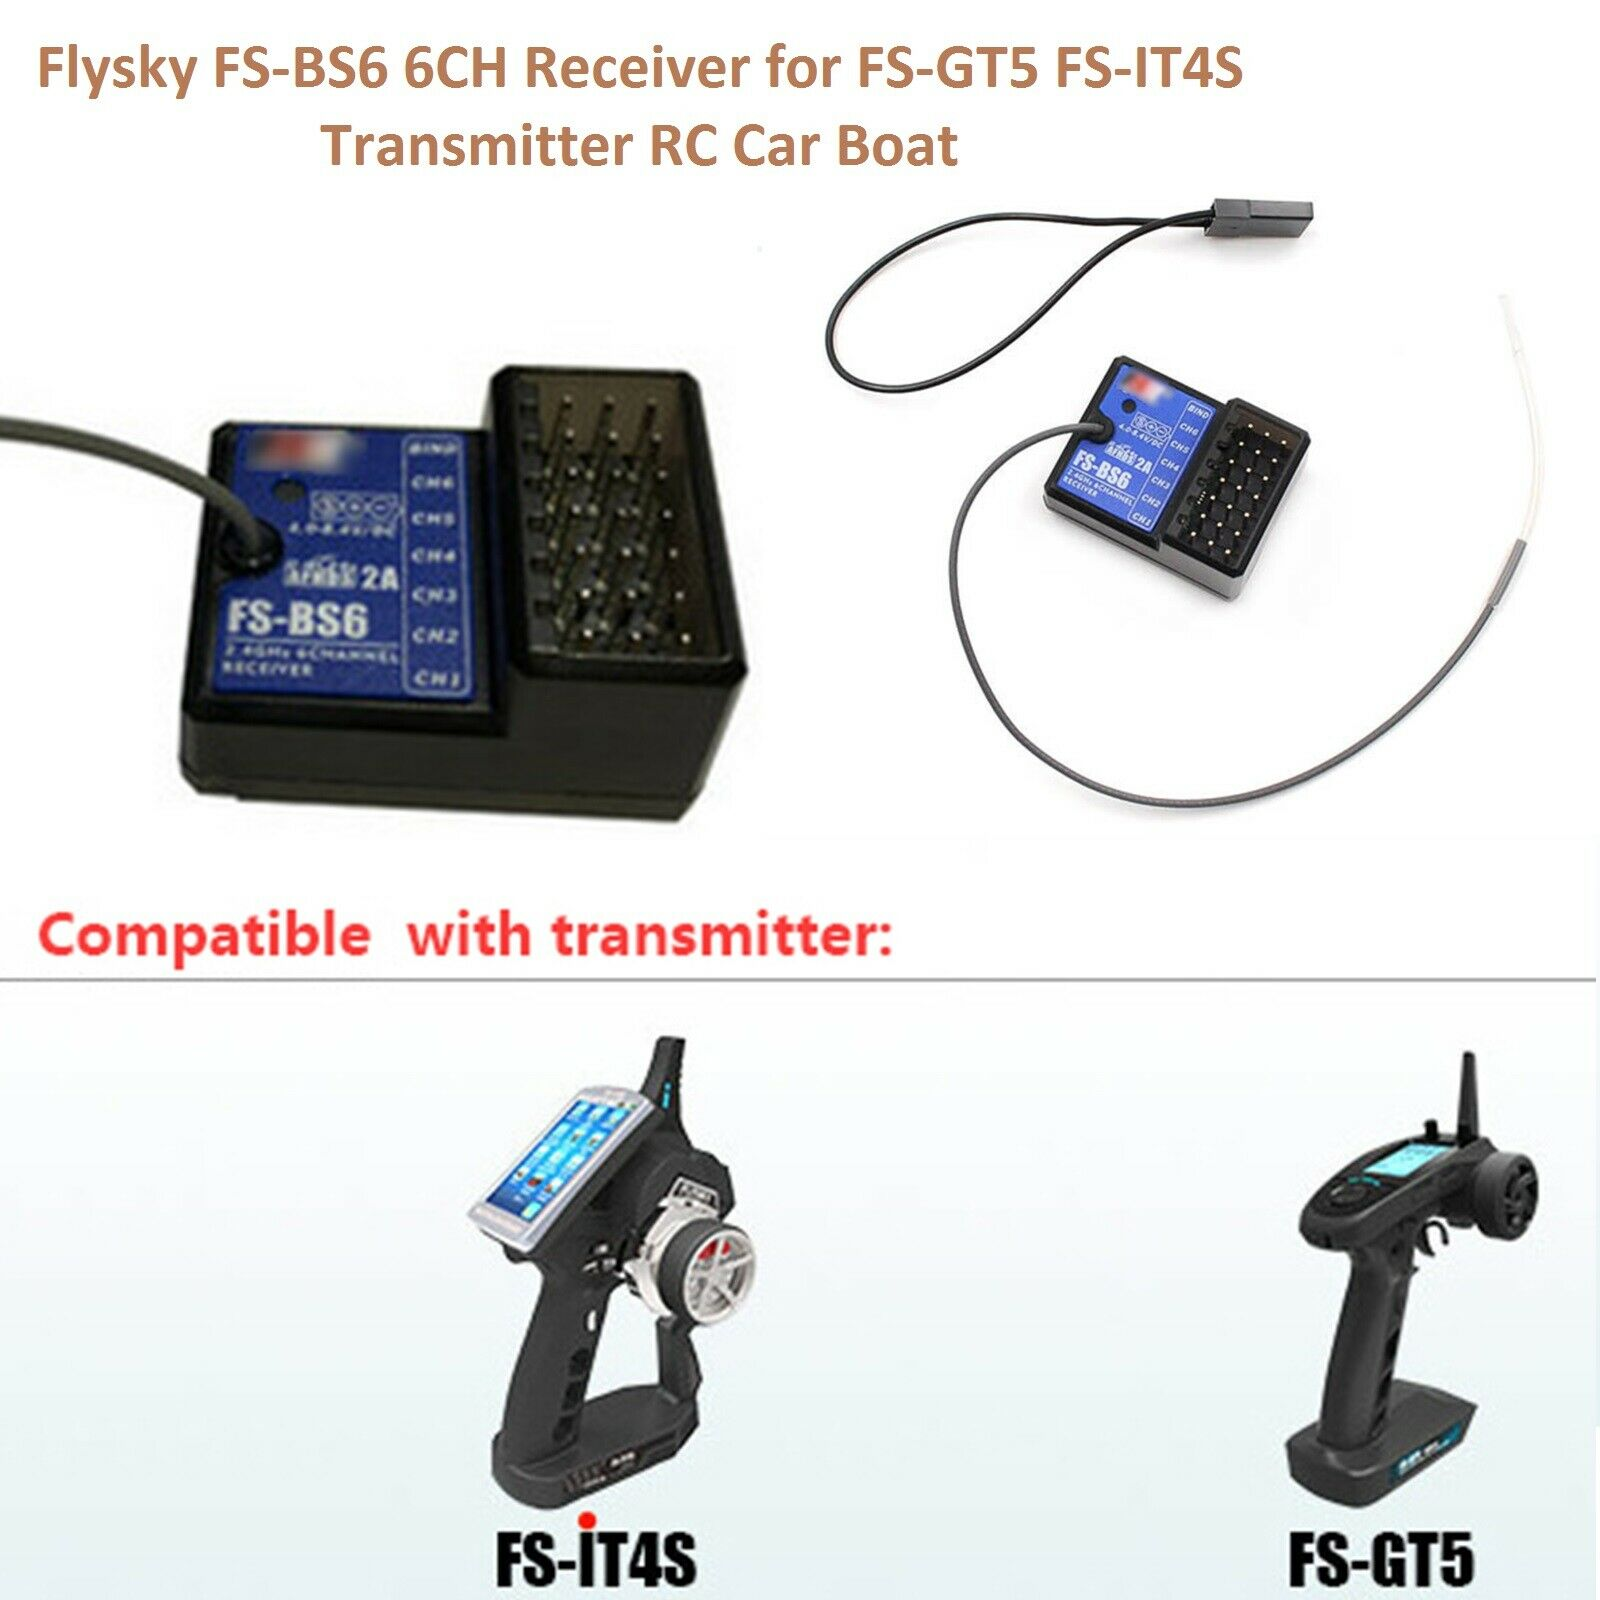 FS-BS6 2.4G 6CH Receiver for RC Car Boat FS-GT5 FS-IT4S Transmitter